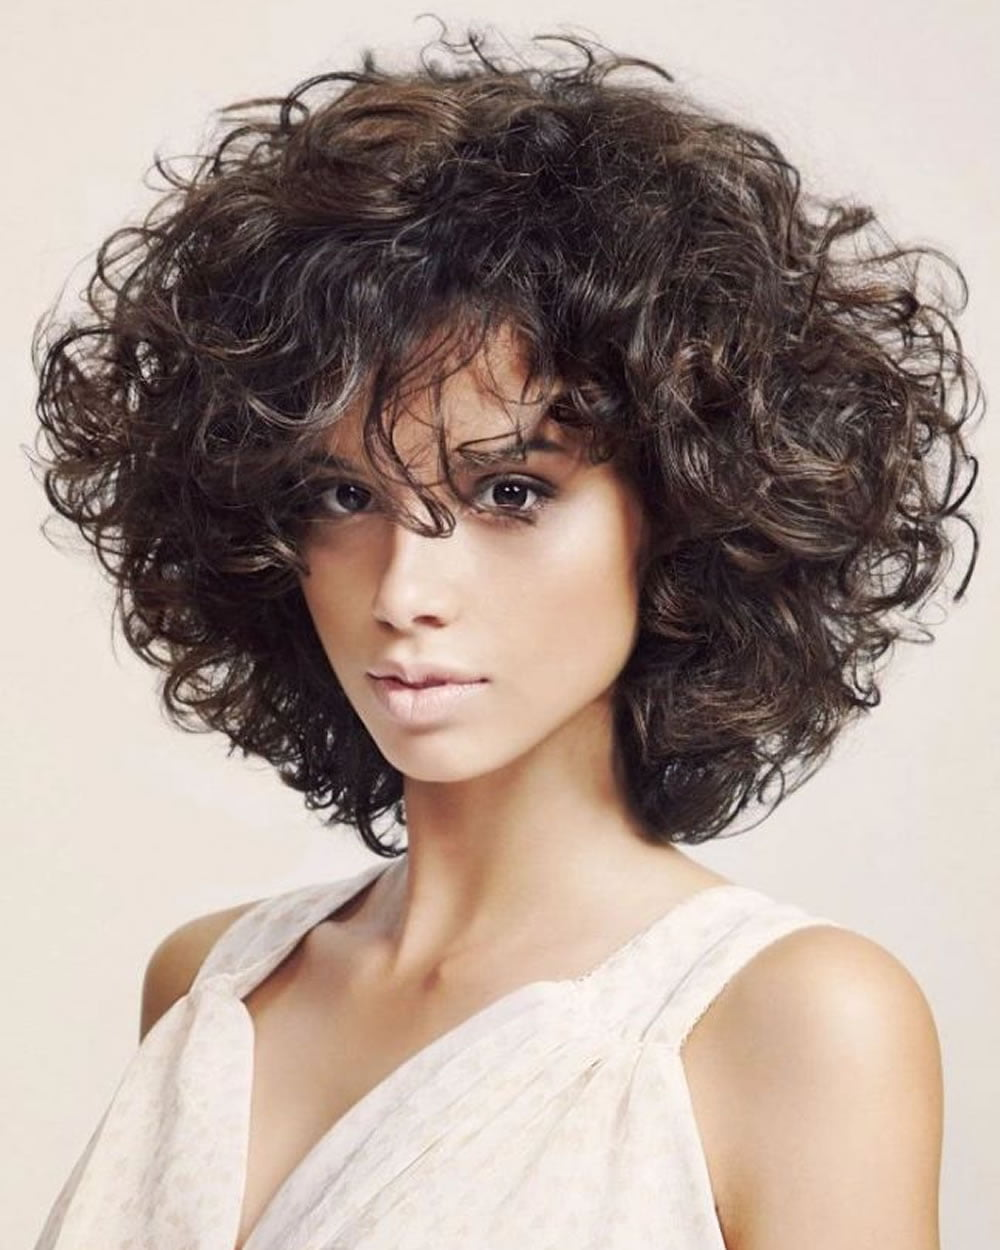 Haircut Styles For Curly Short Hair Gallery Haircuts